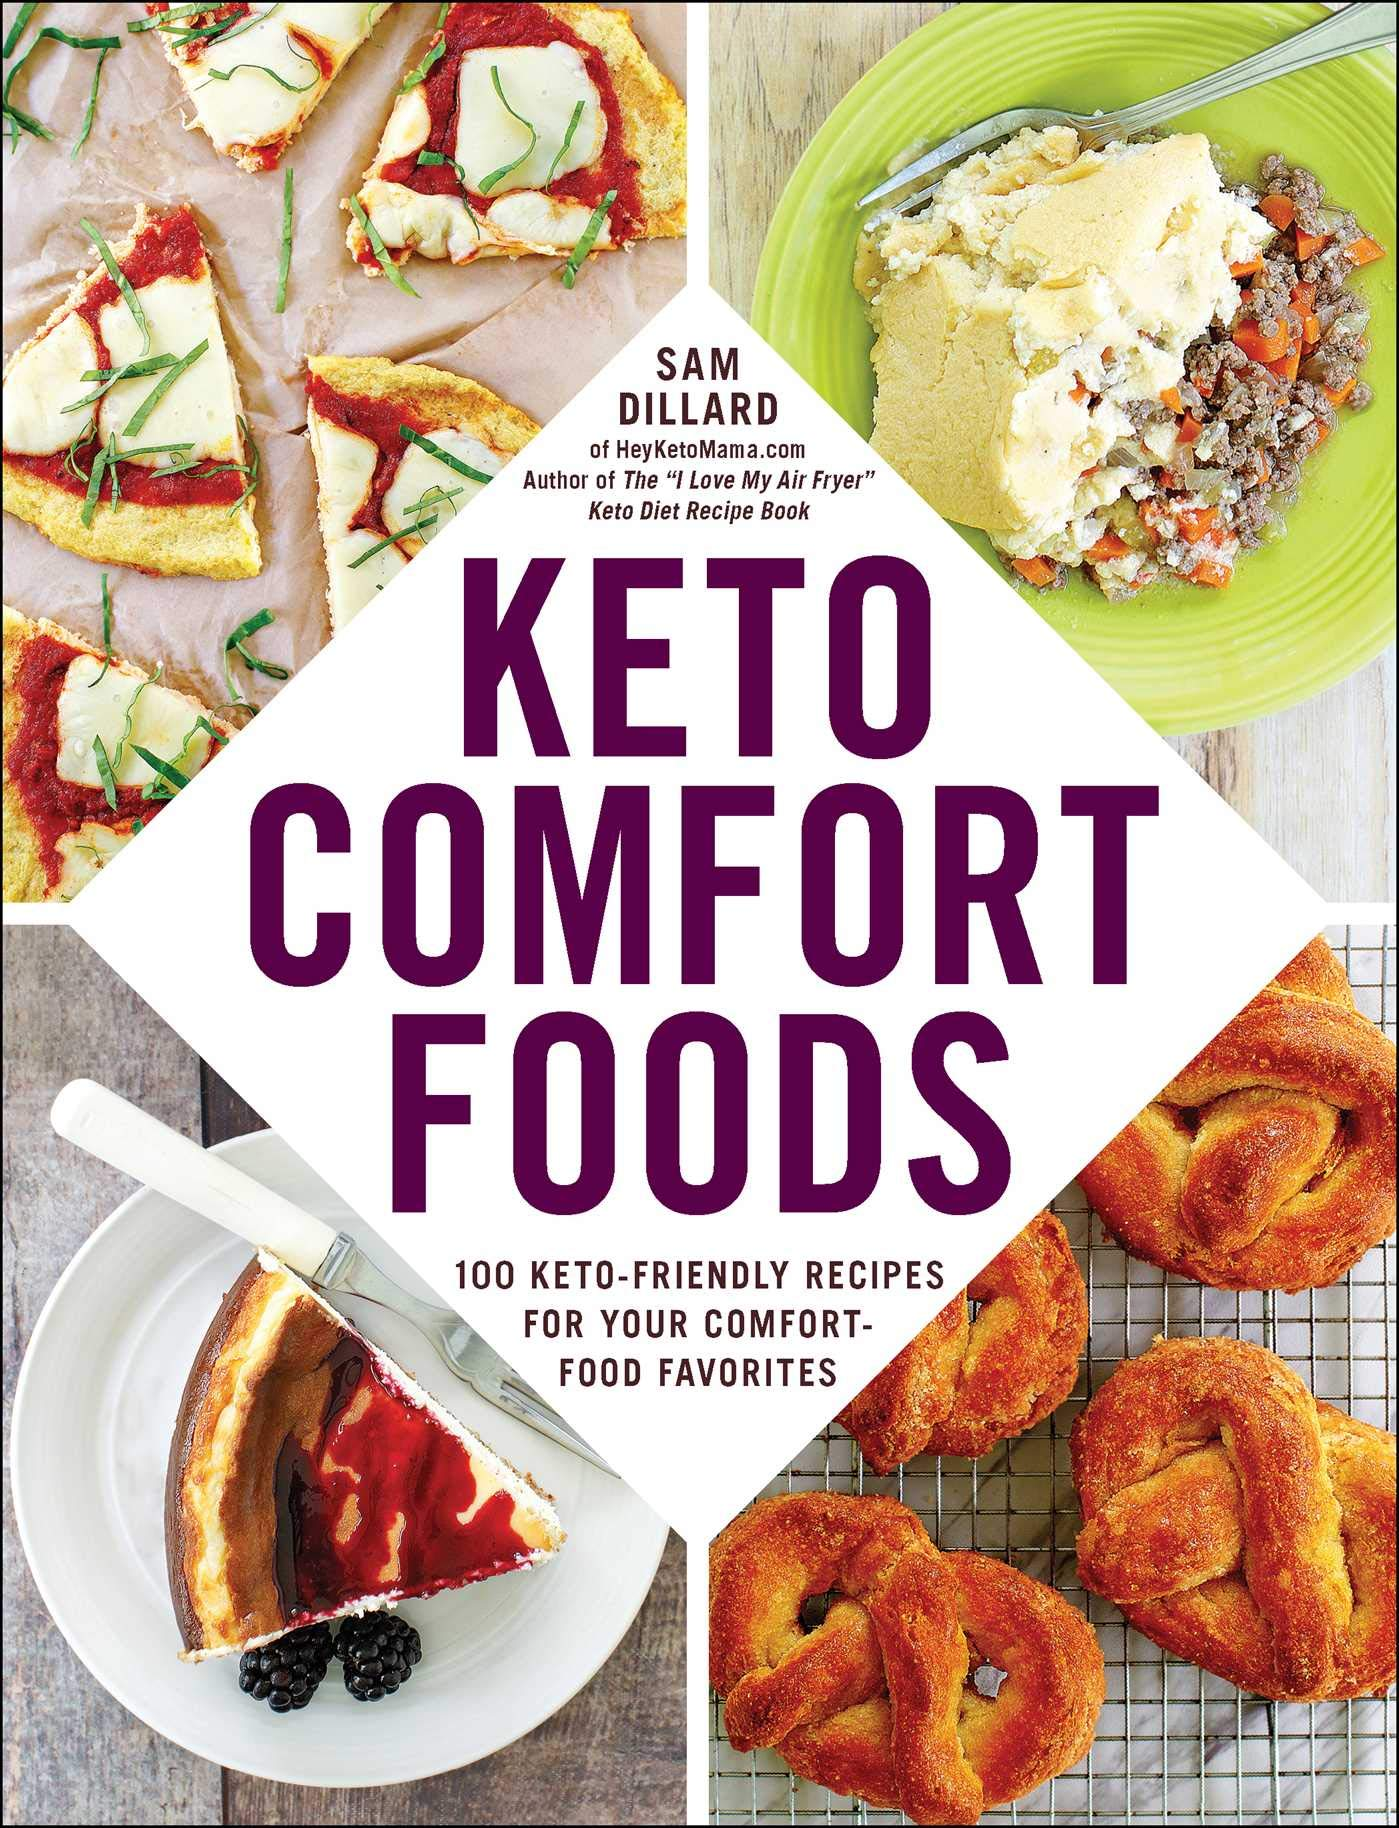 Image OfKeto Comfort Foods: 100 Keto-Friendly Recipes For Your Comfort-Food Favorites